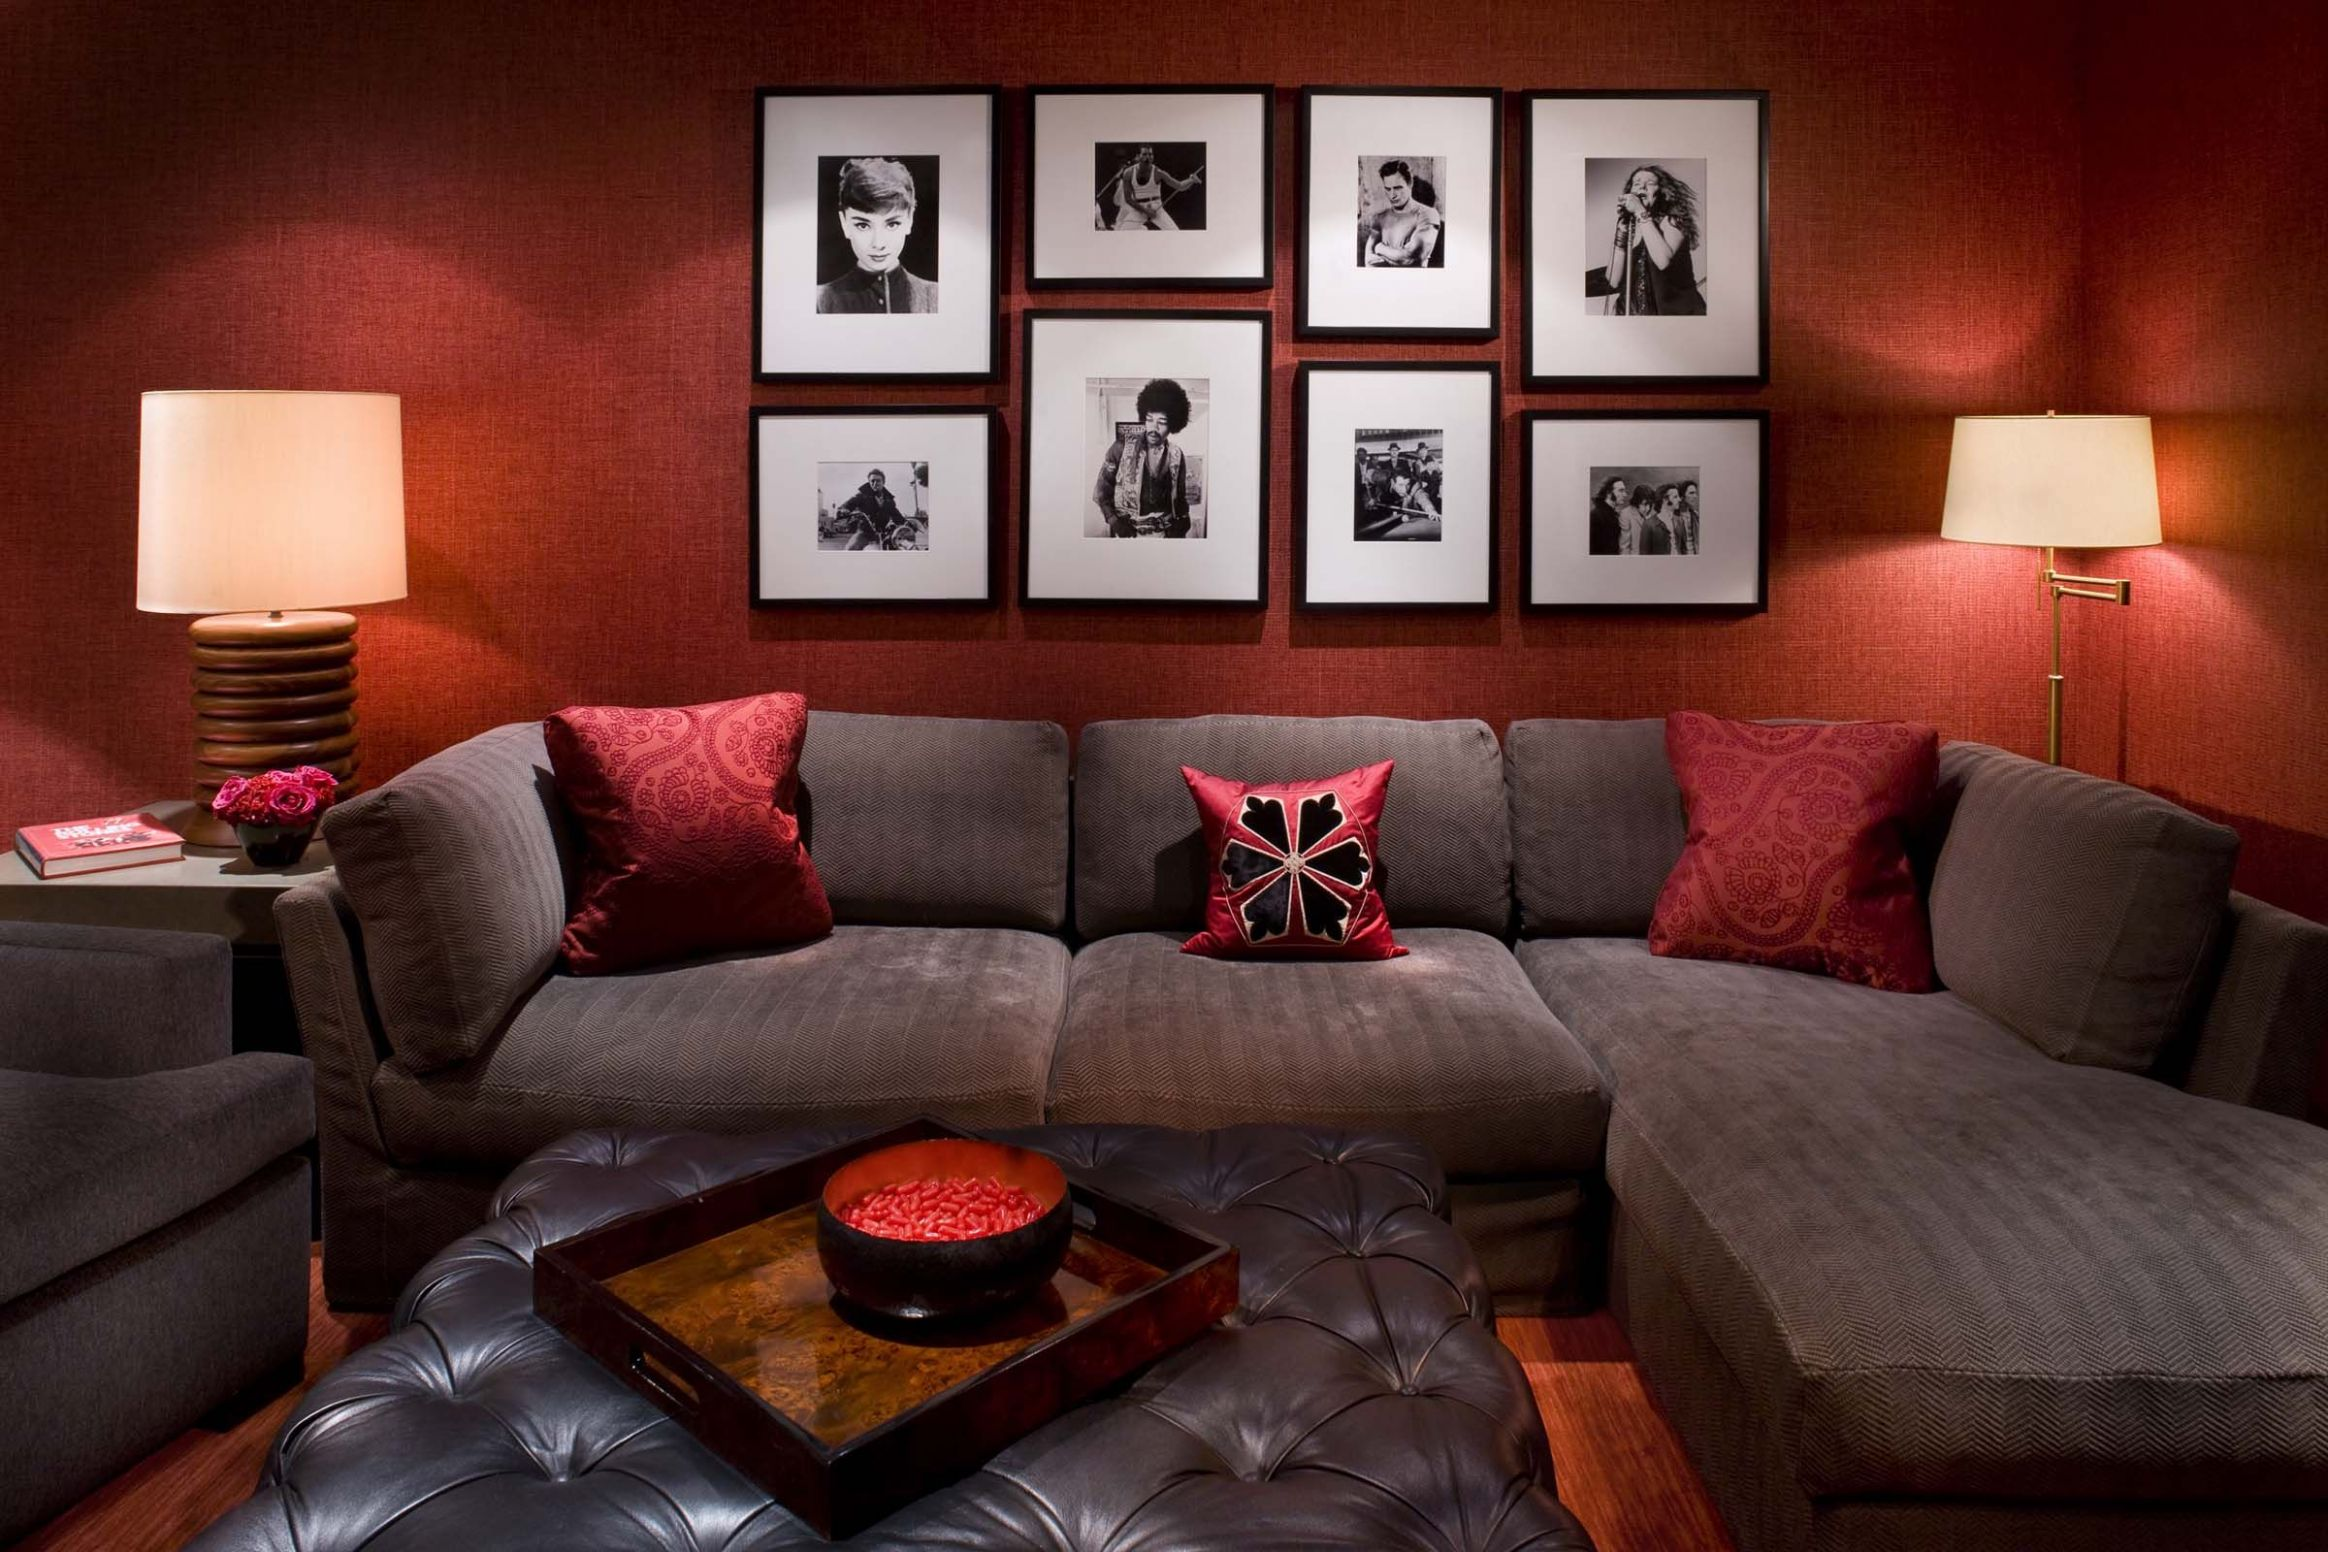 11 Examples Of Wall Decorations For Living Room | Red living room ..